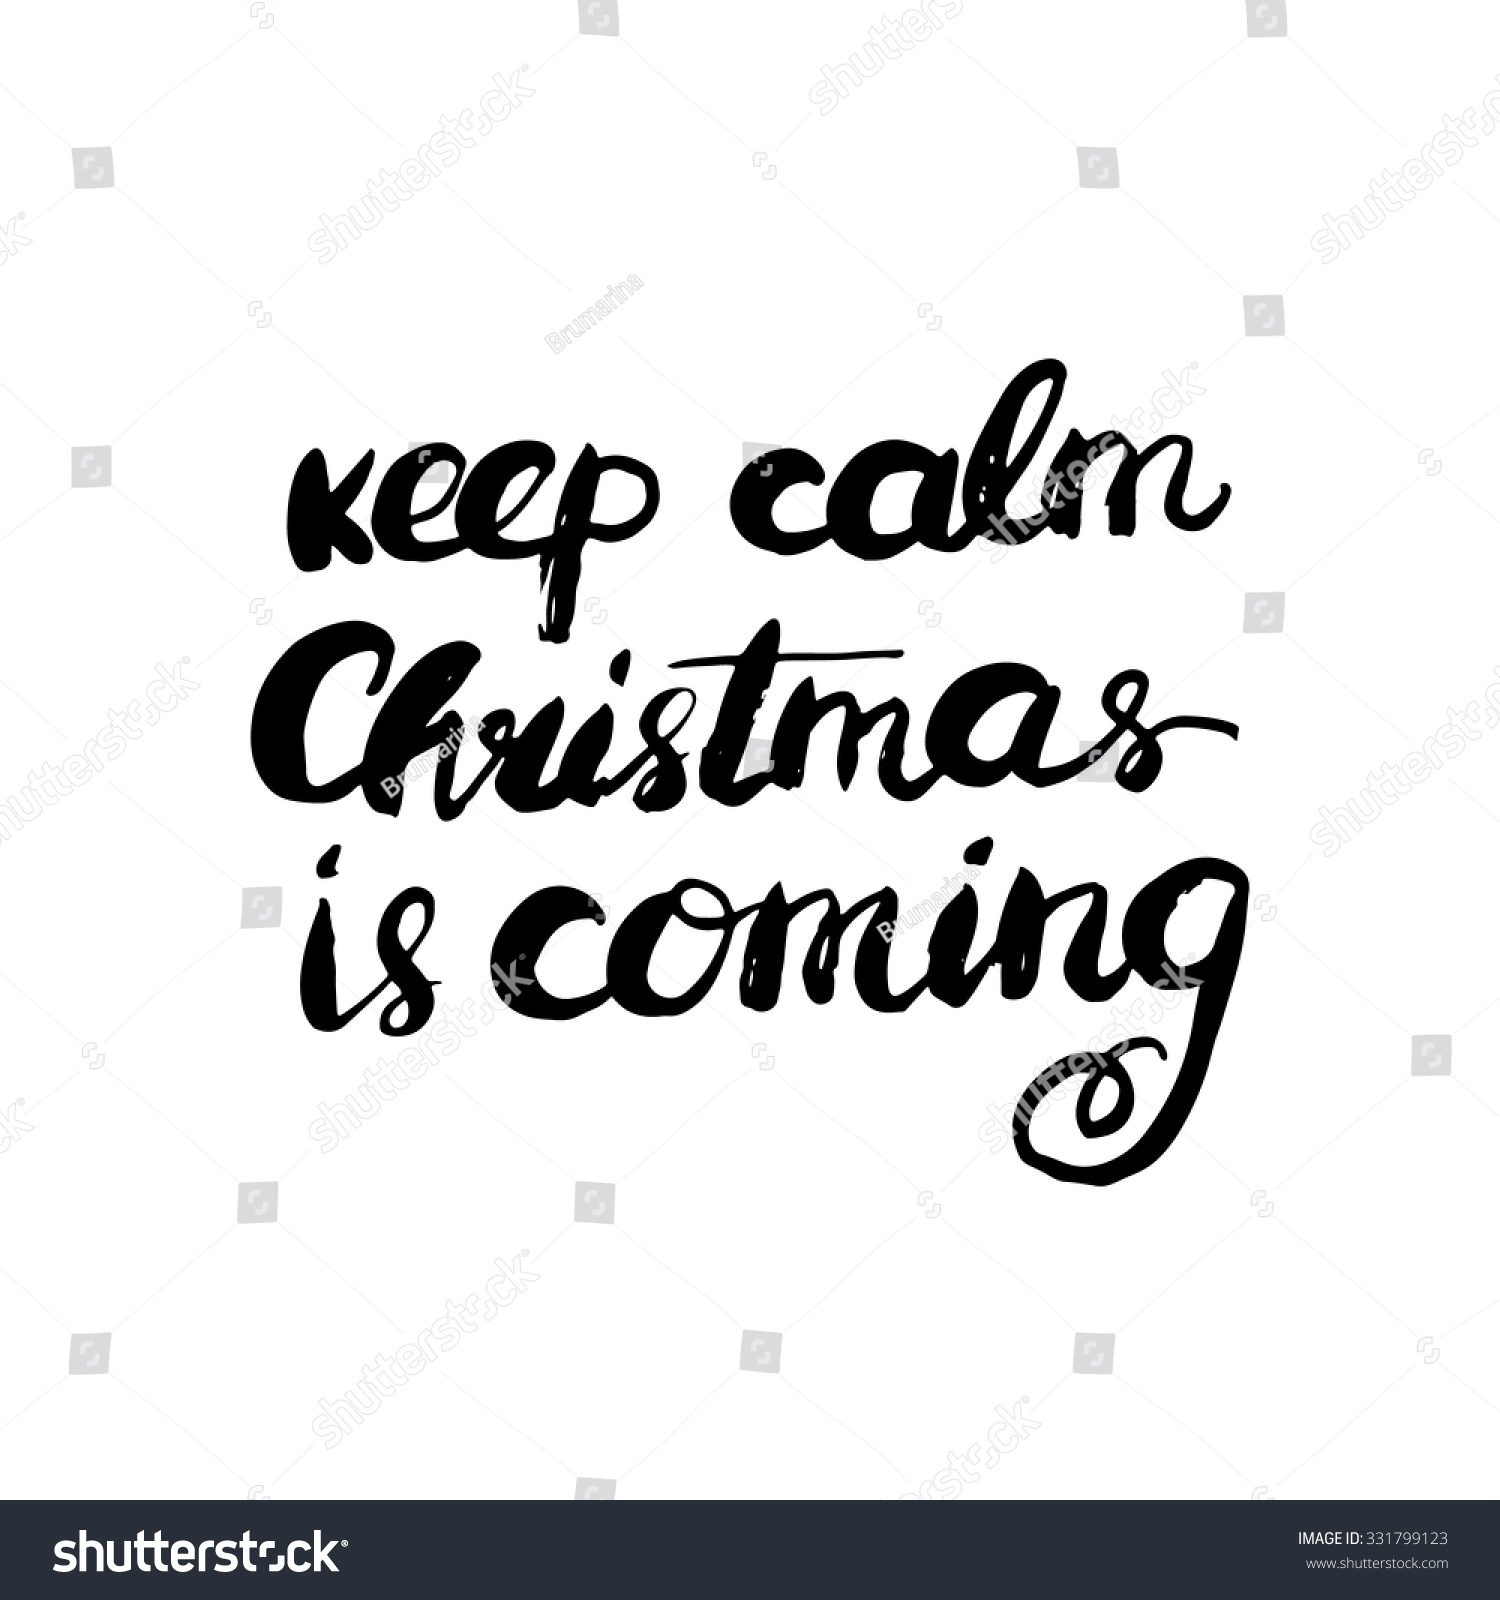 Keep Calm Christmas Coming Hand Lettered Stock Vector (Royalty Free ...